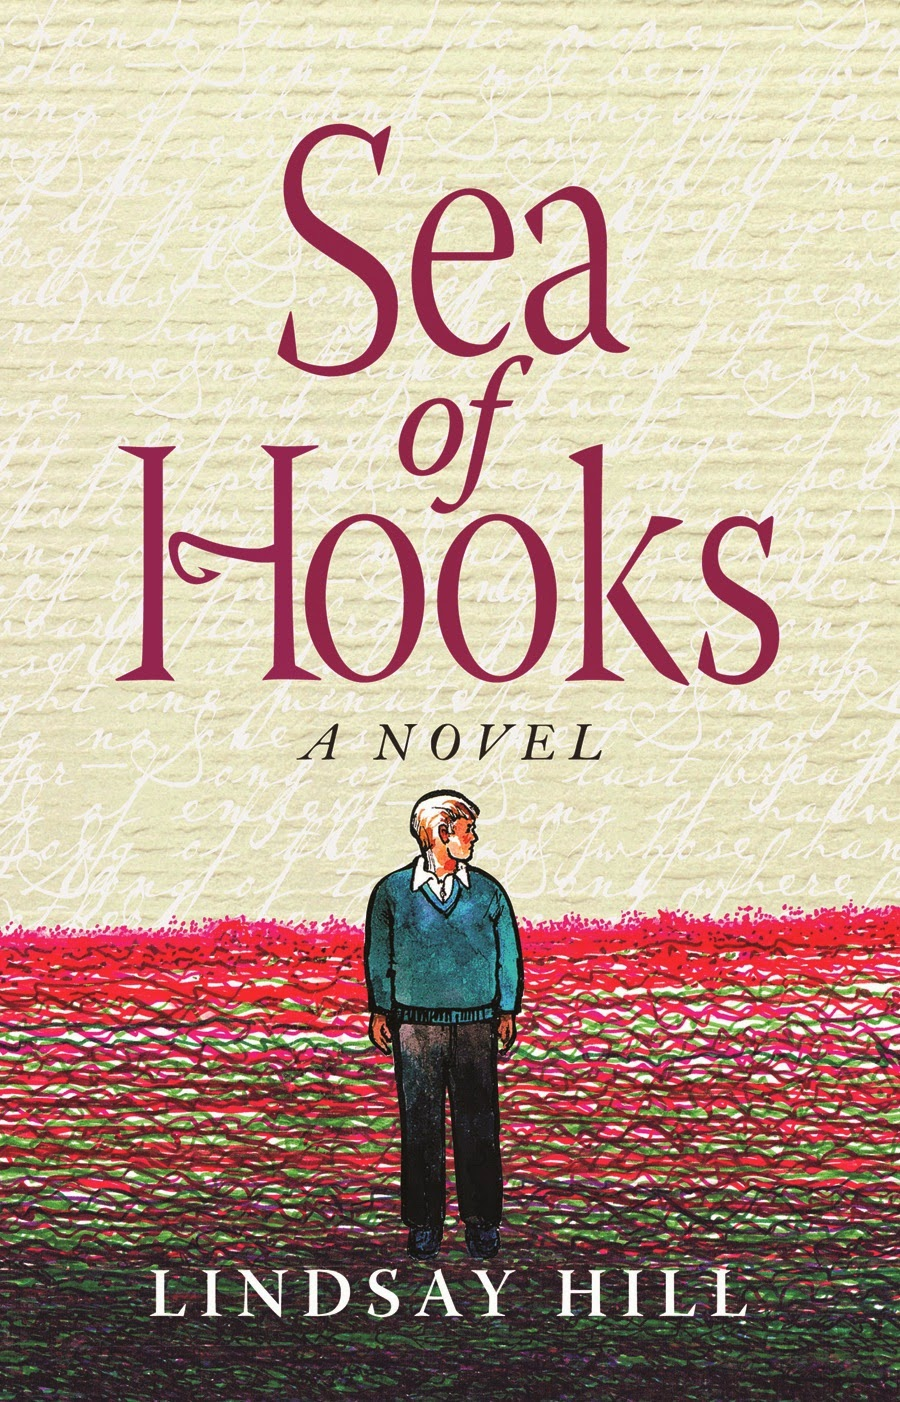 http://discover.halifaxpubliclibraries.ca/?q=title:sea%20of%20hooks